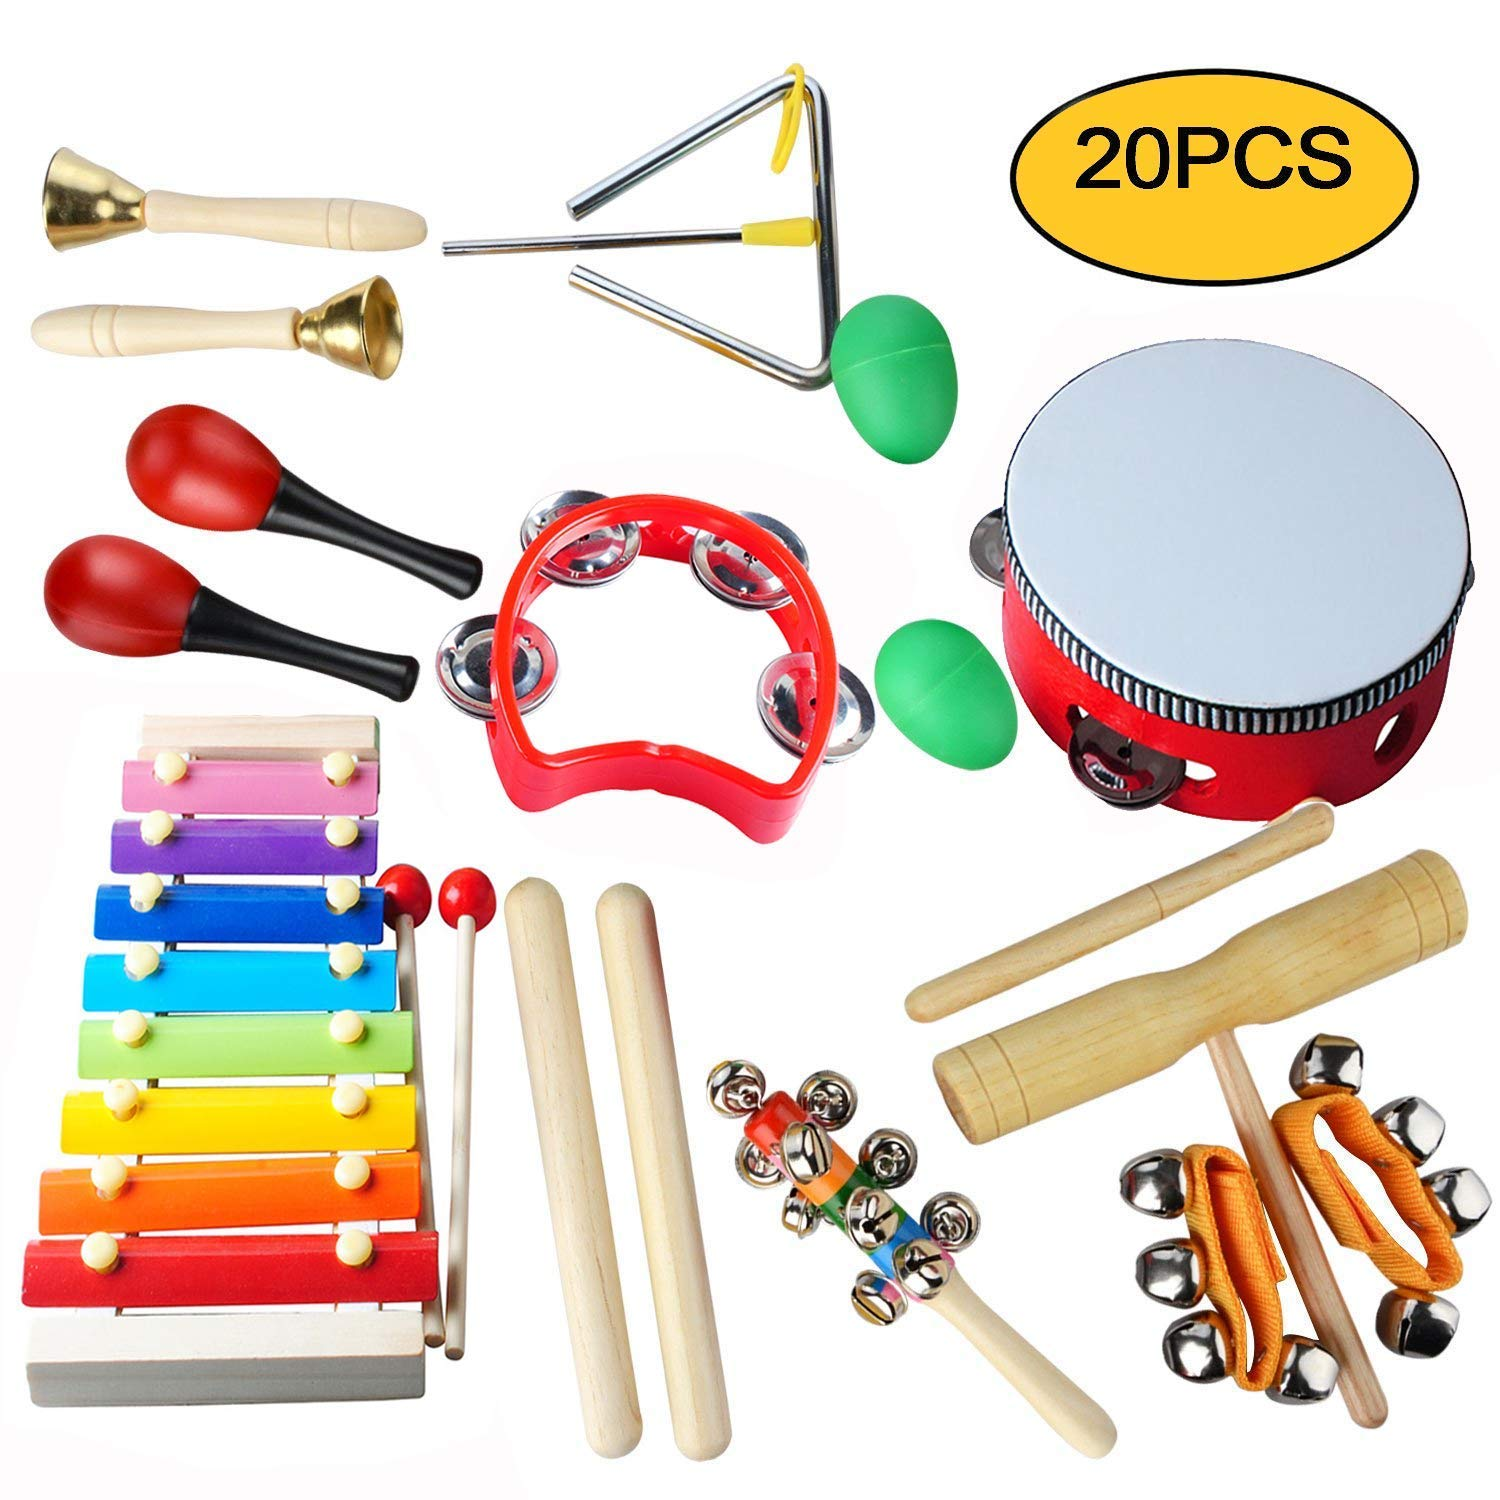 Kids Musical Instruments Set - Egg Shakers for Babies,Wooden Baby Percussion Toy Rhythm Xylophone,Infant Drum Set,Kids Percussion Toy,Rhythm Band for Toddler, Children Preschool Educational 20PCS